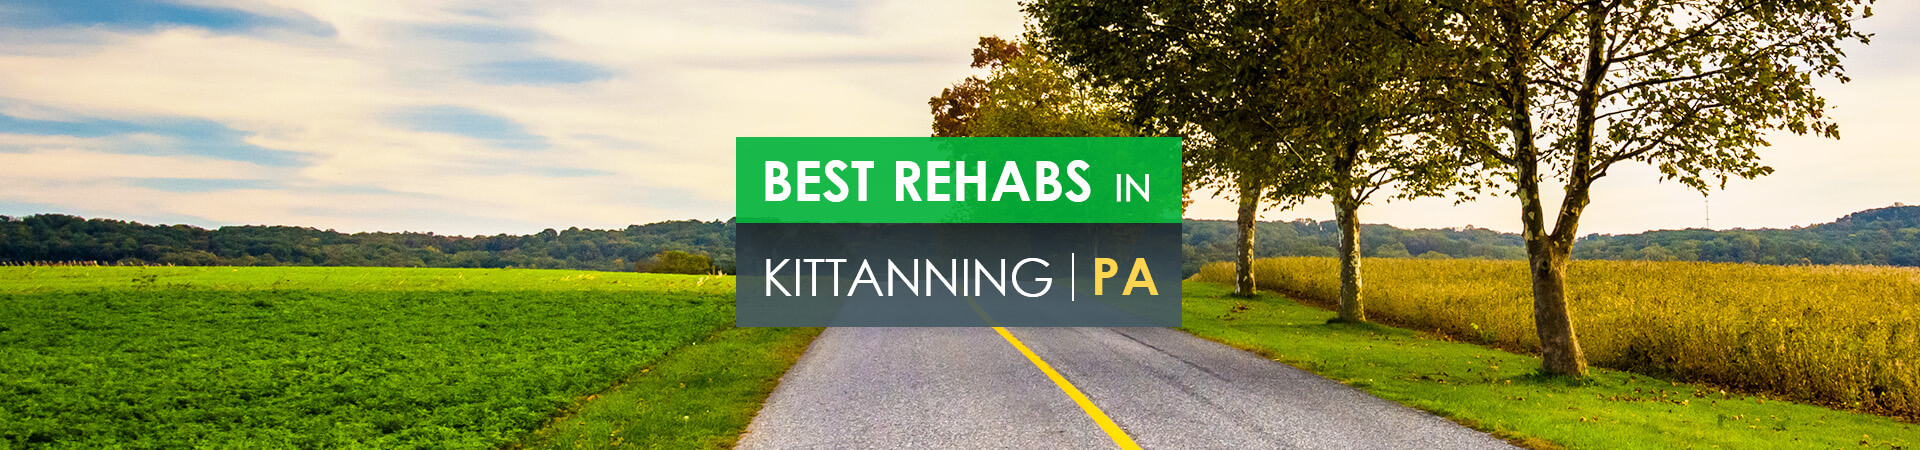 Best rehabs in Kittanning, PA